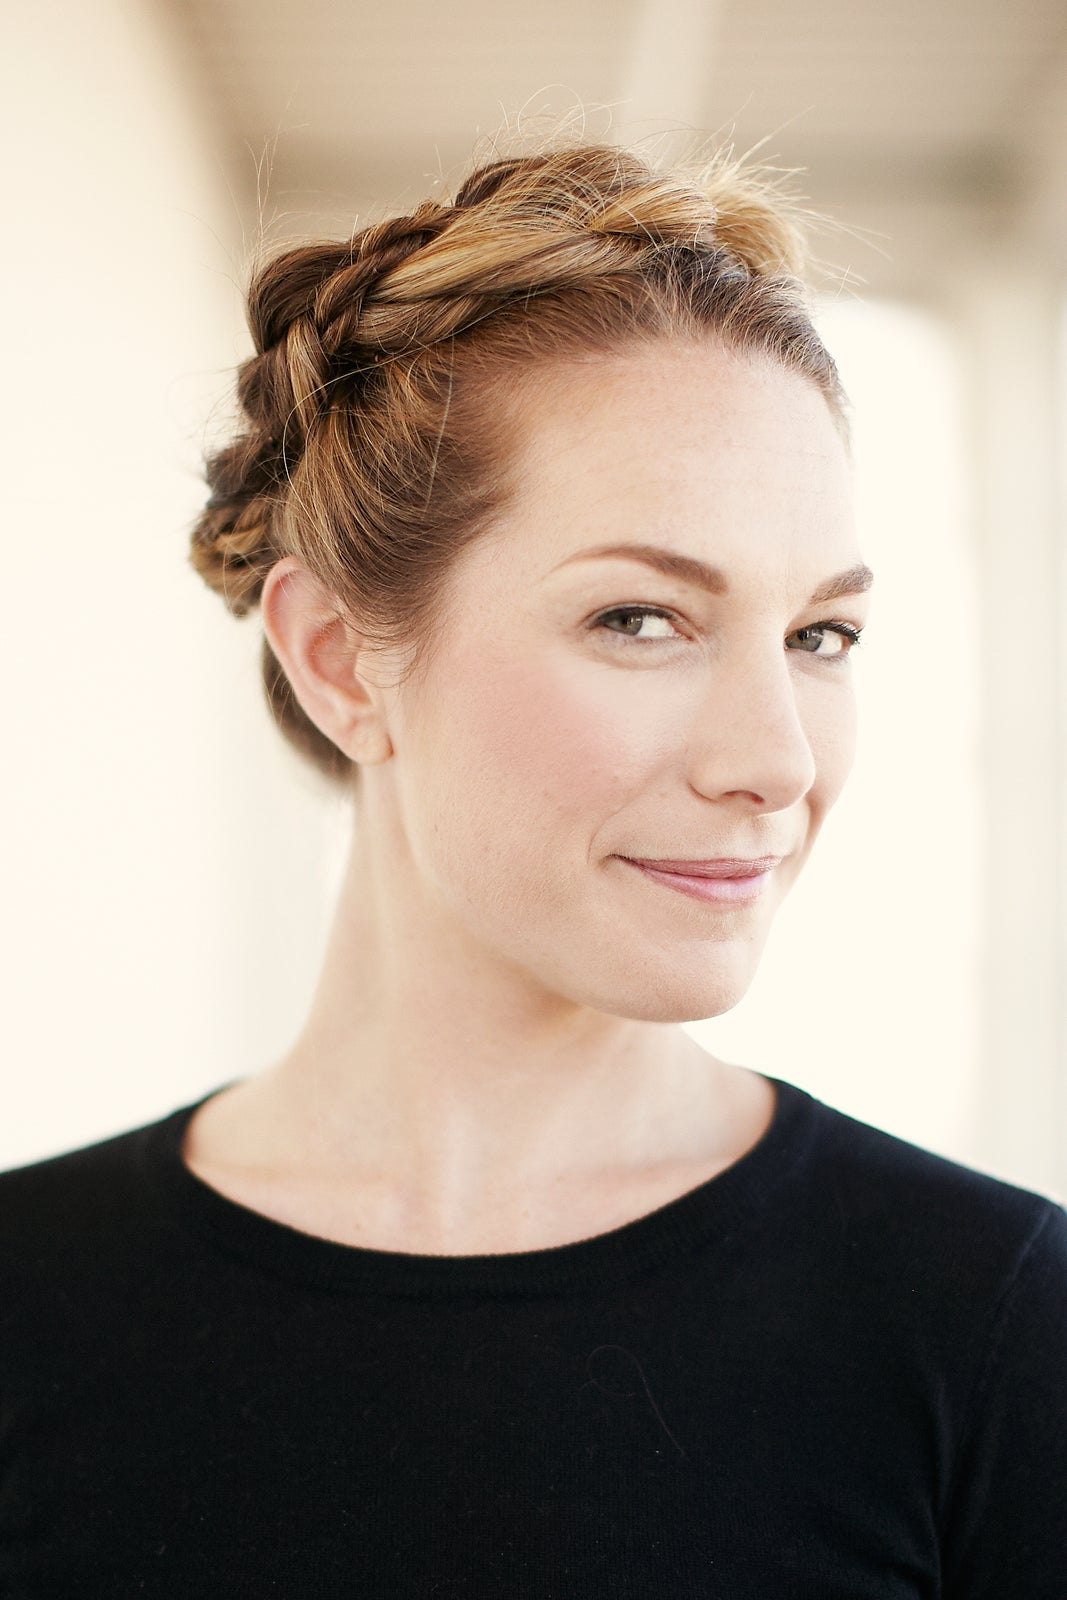 Dirty Messy Hair Easy Styling Tips - Diy hairstyle knotted milkmaid braid